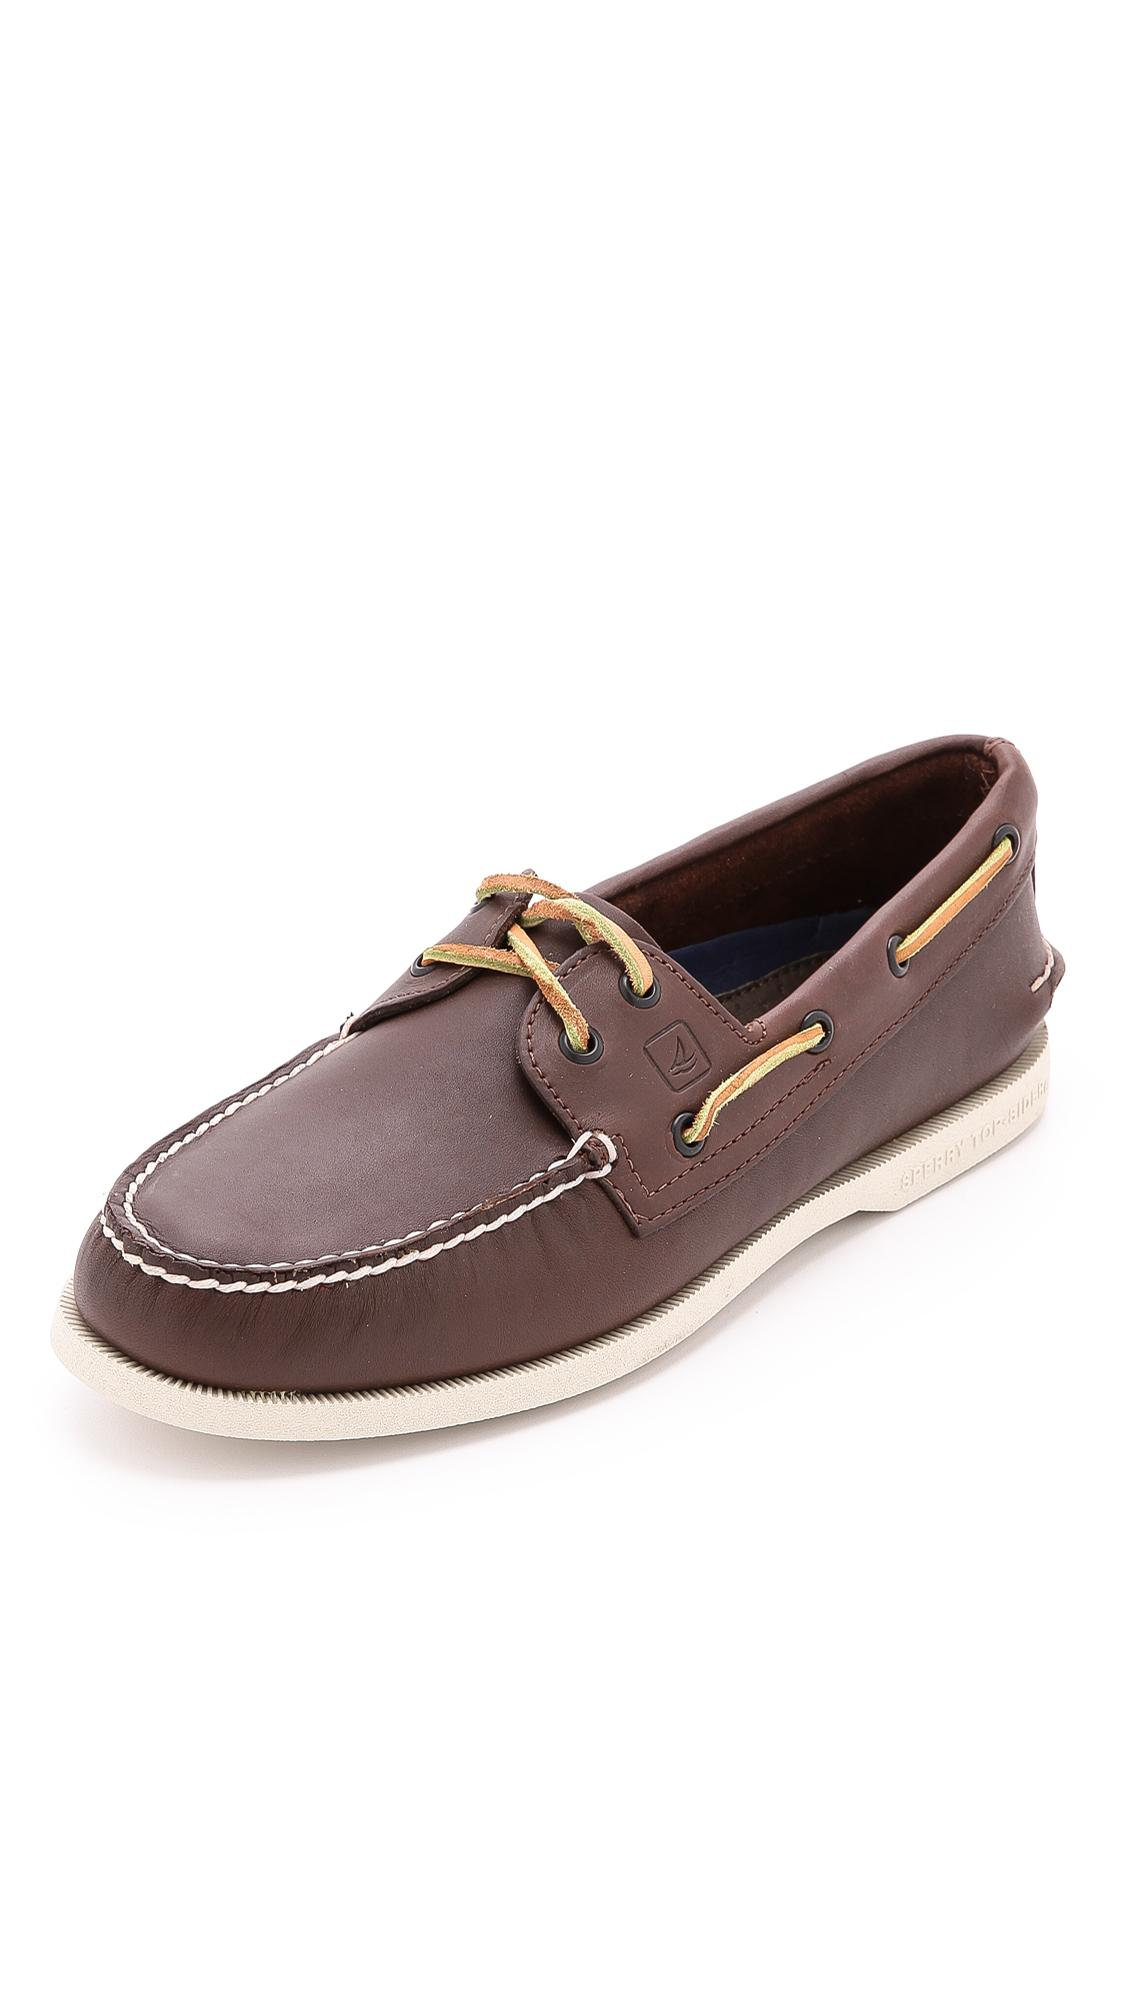 Sperry Top Sider Boat Shoes Sizing